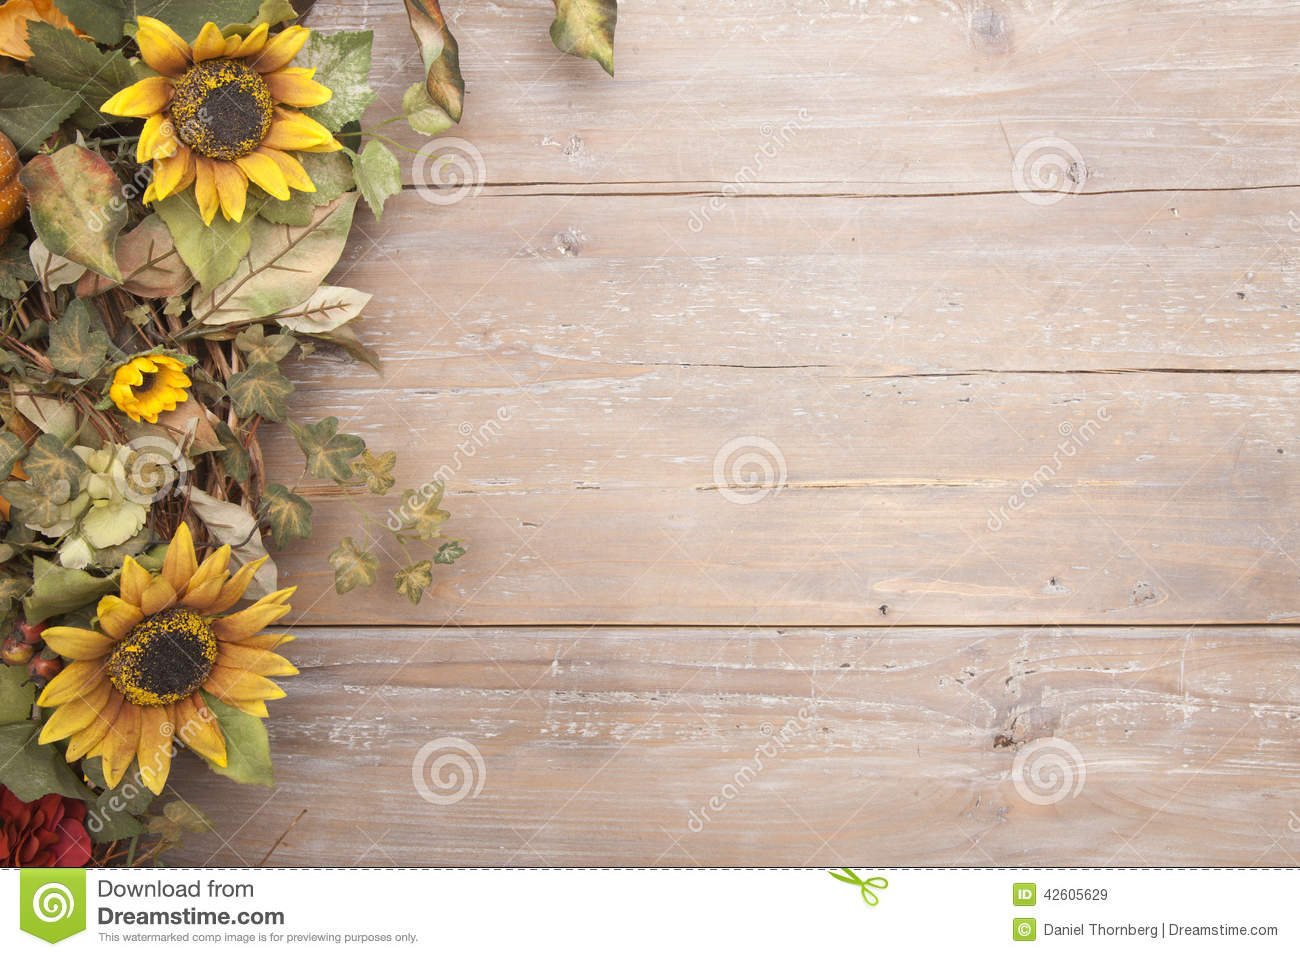 Fall Computer Wallpaper Images Fall Border With Sunflowers Stock Photo Image 42605629